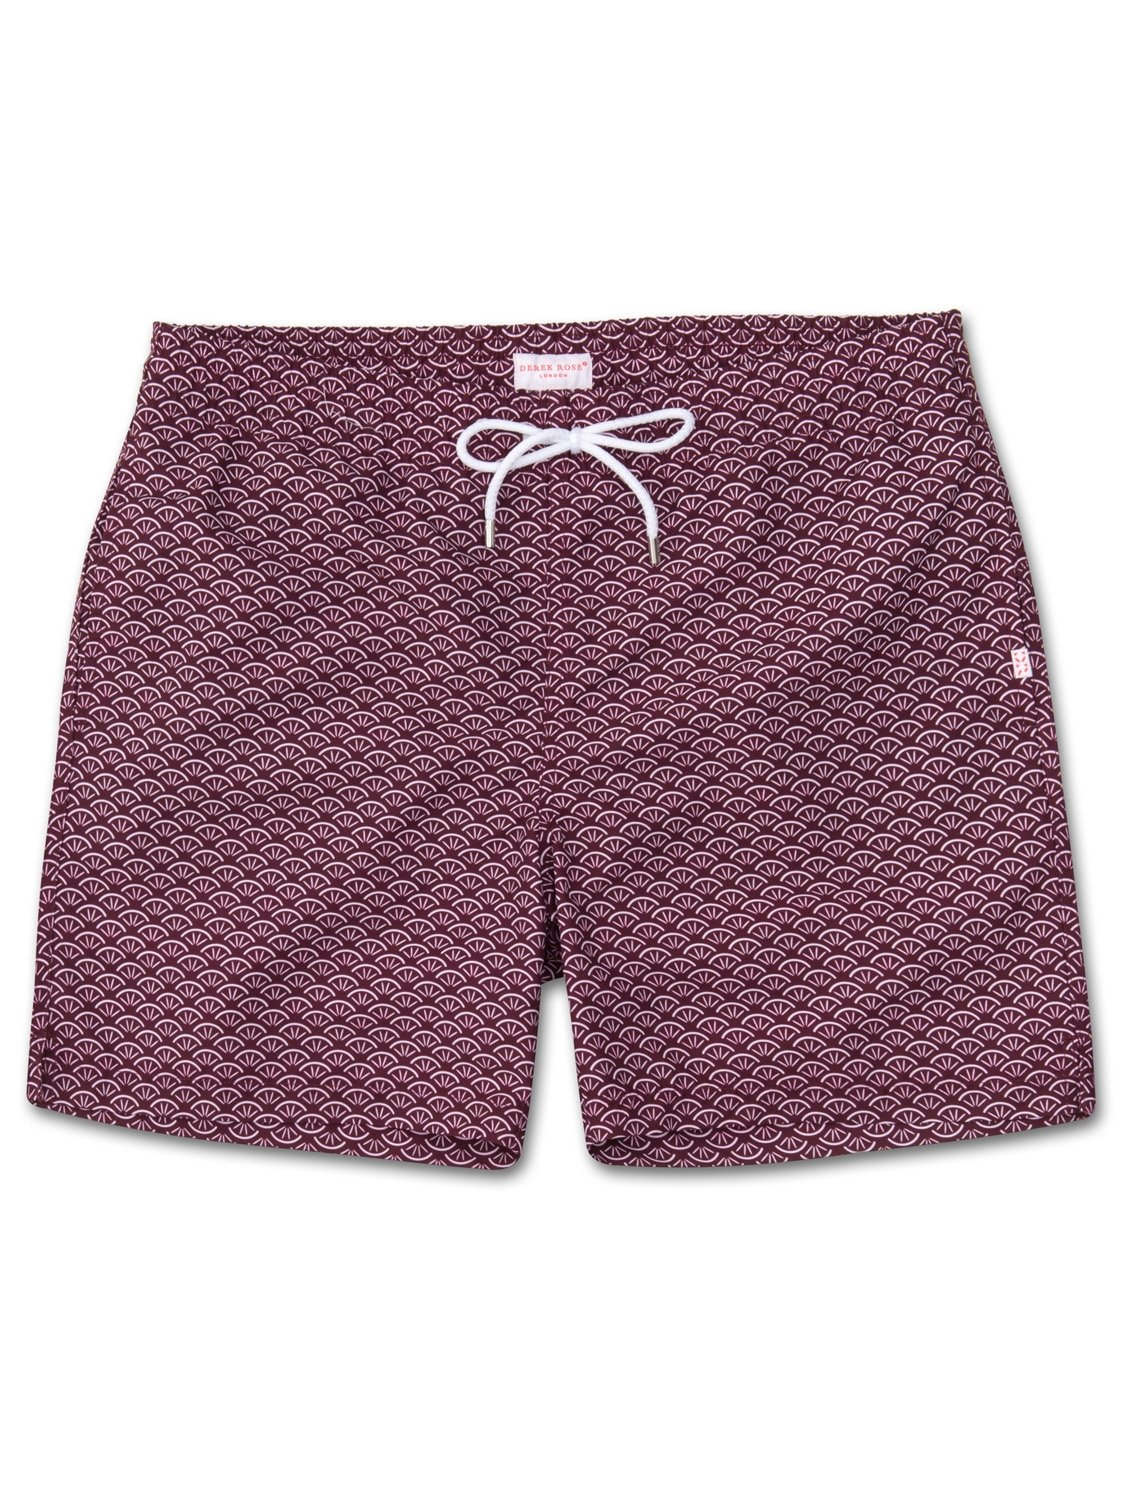 Men's Classic Fit Swim Shorts Tropez 3 Burgundy